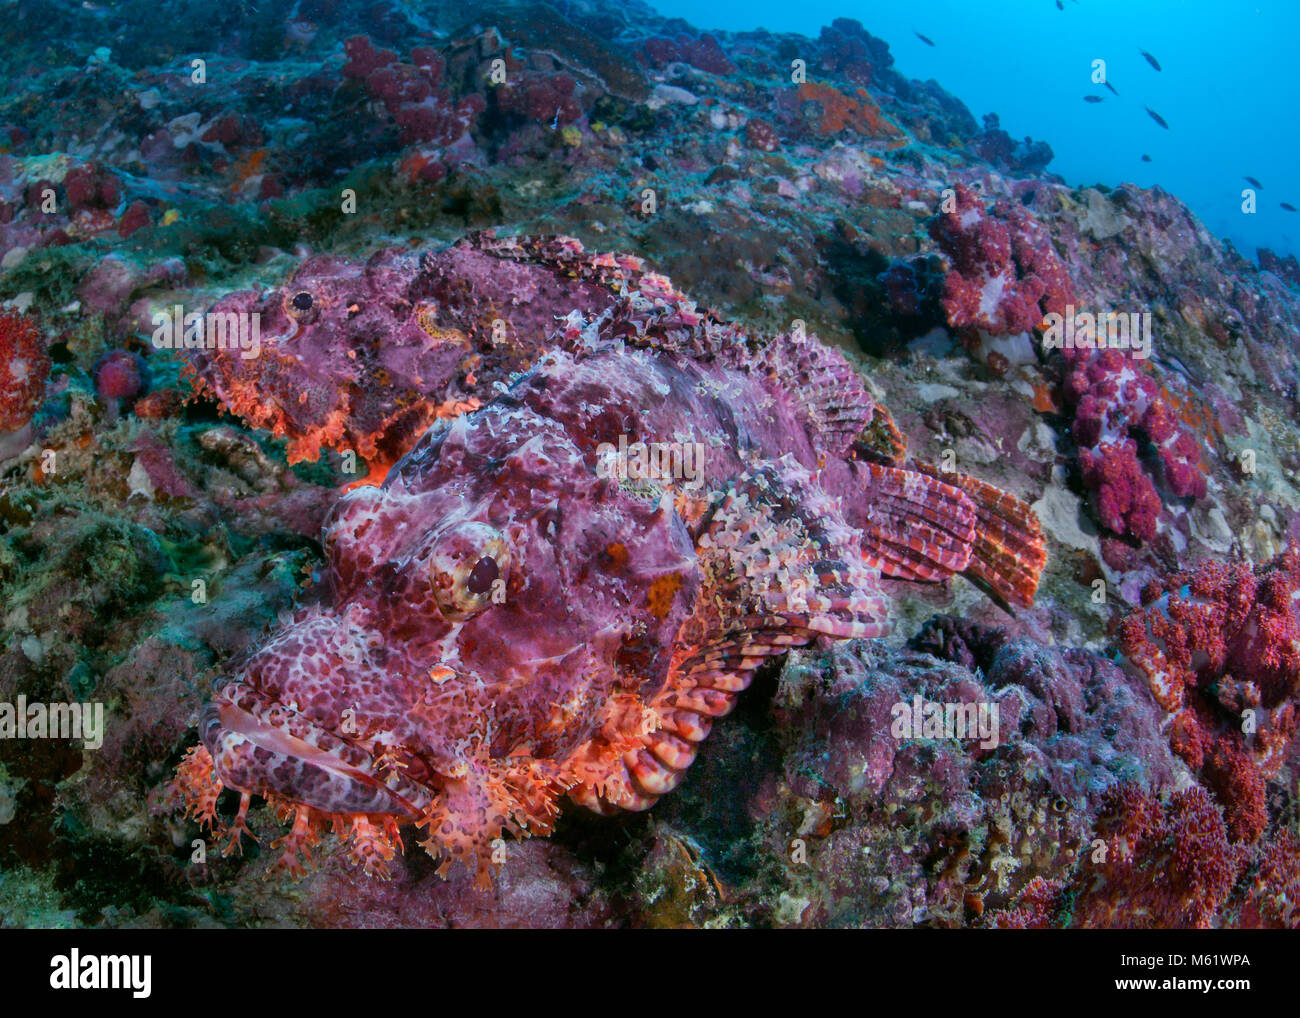 Pair of bearded scorpionfish have no where to hide on a dying coral reef. Richelieu Rock, Andaman Sea, Thailand. - Stock Image